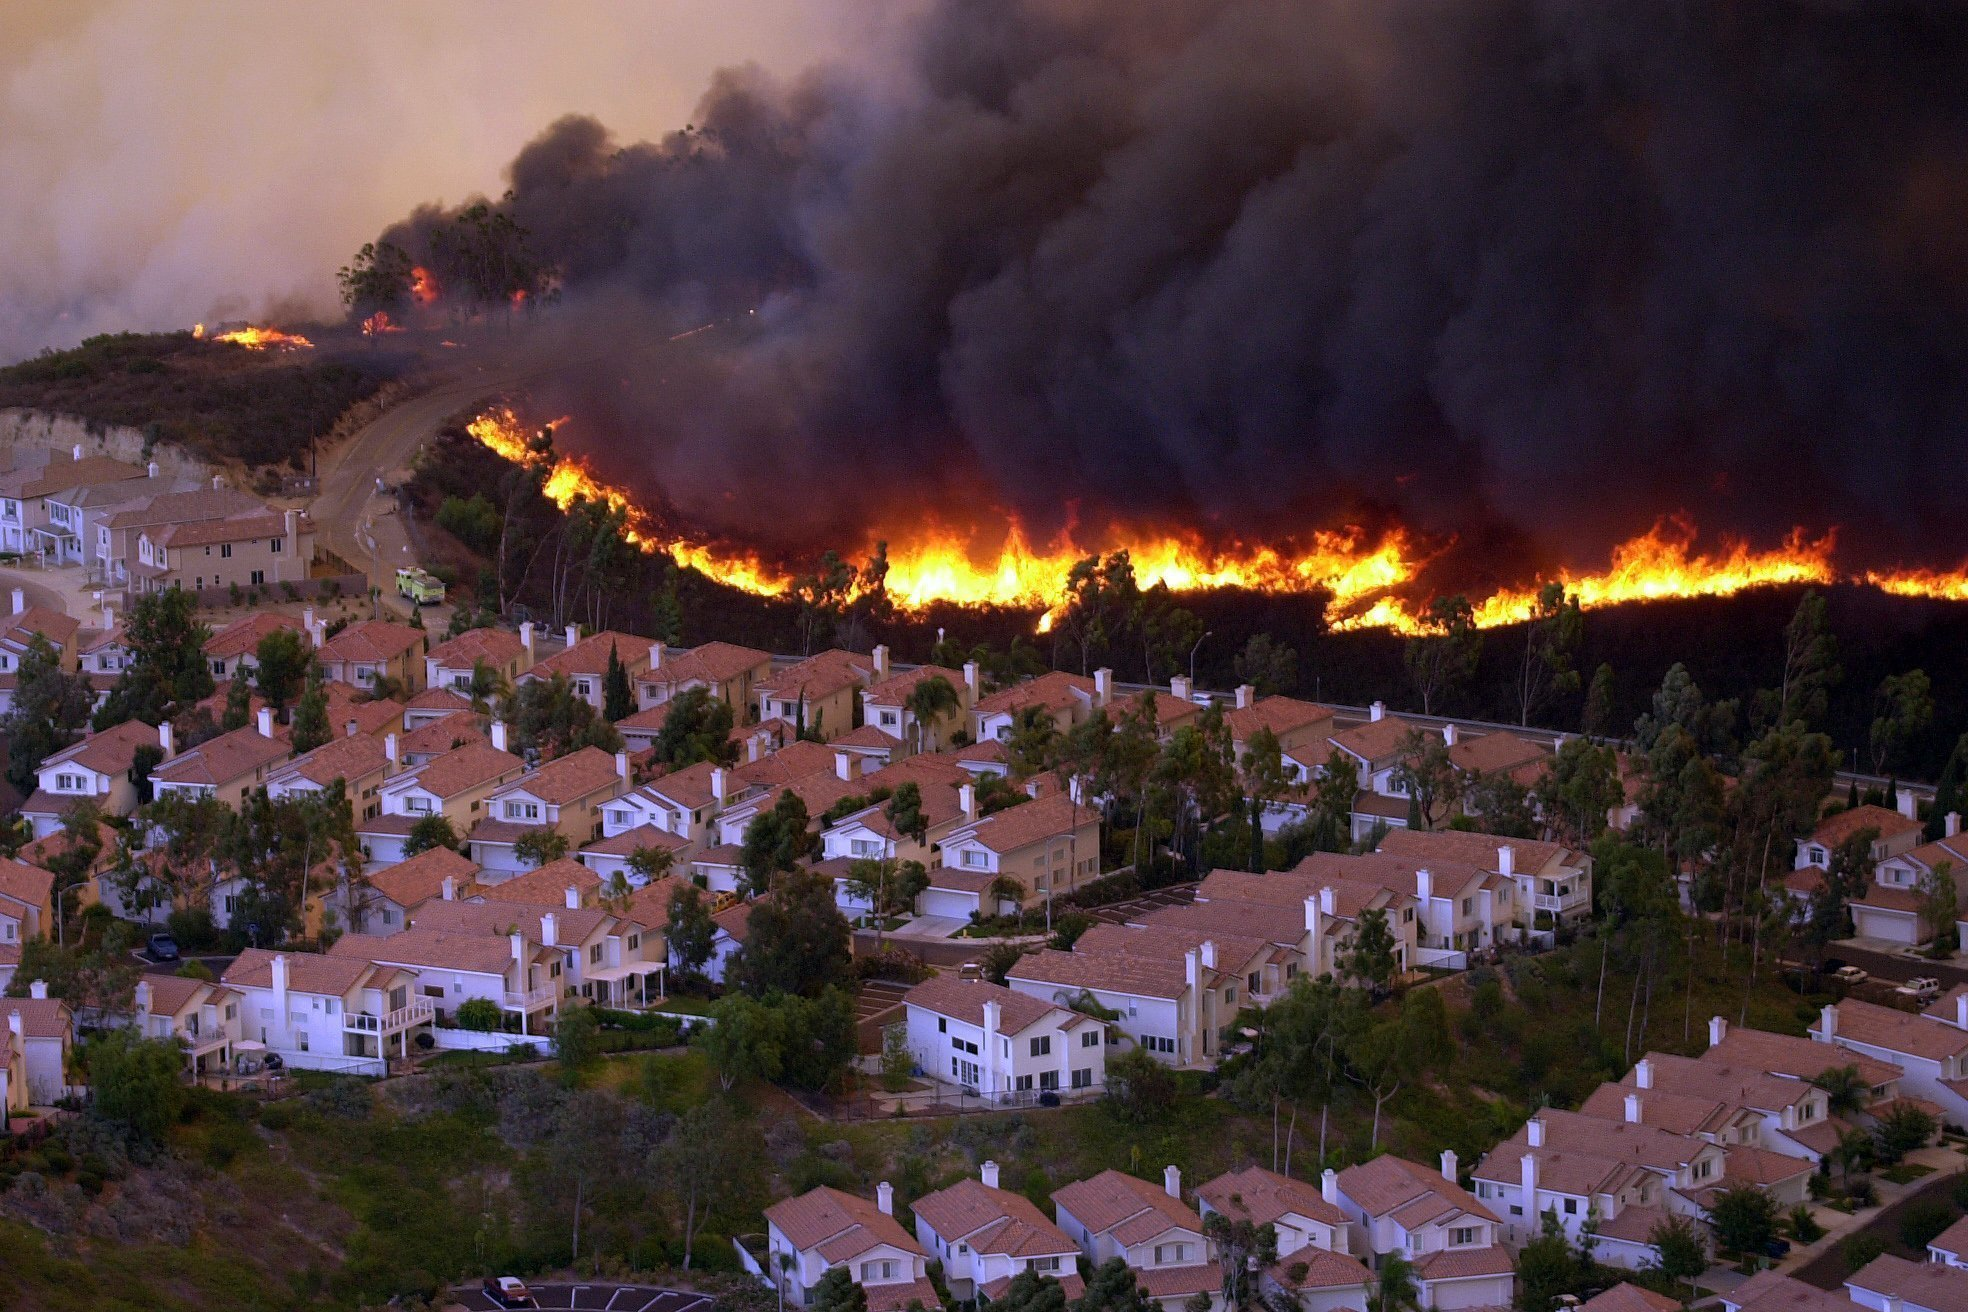 The Cedar Fire in 2003 prompted Dr. Kent to wonder how we could better monitor fires to hopefully prevent large-scale tragedies.(Photo from: The San Diego Union-Tribune)